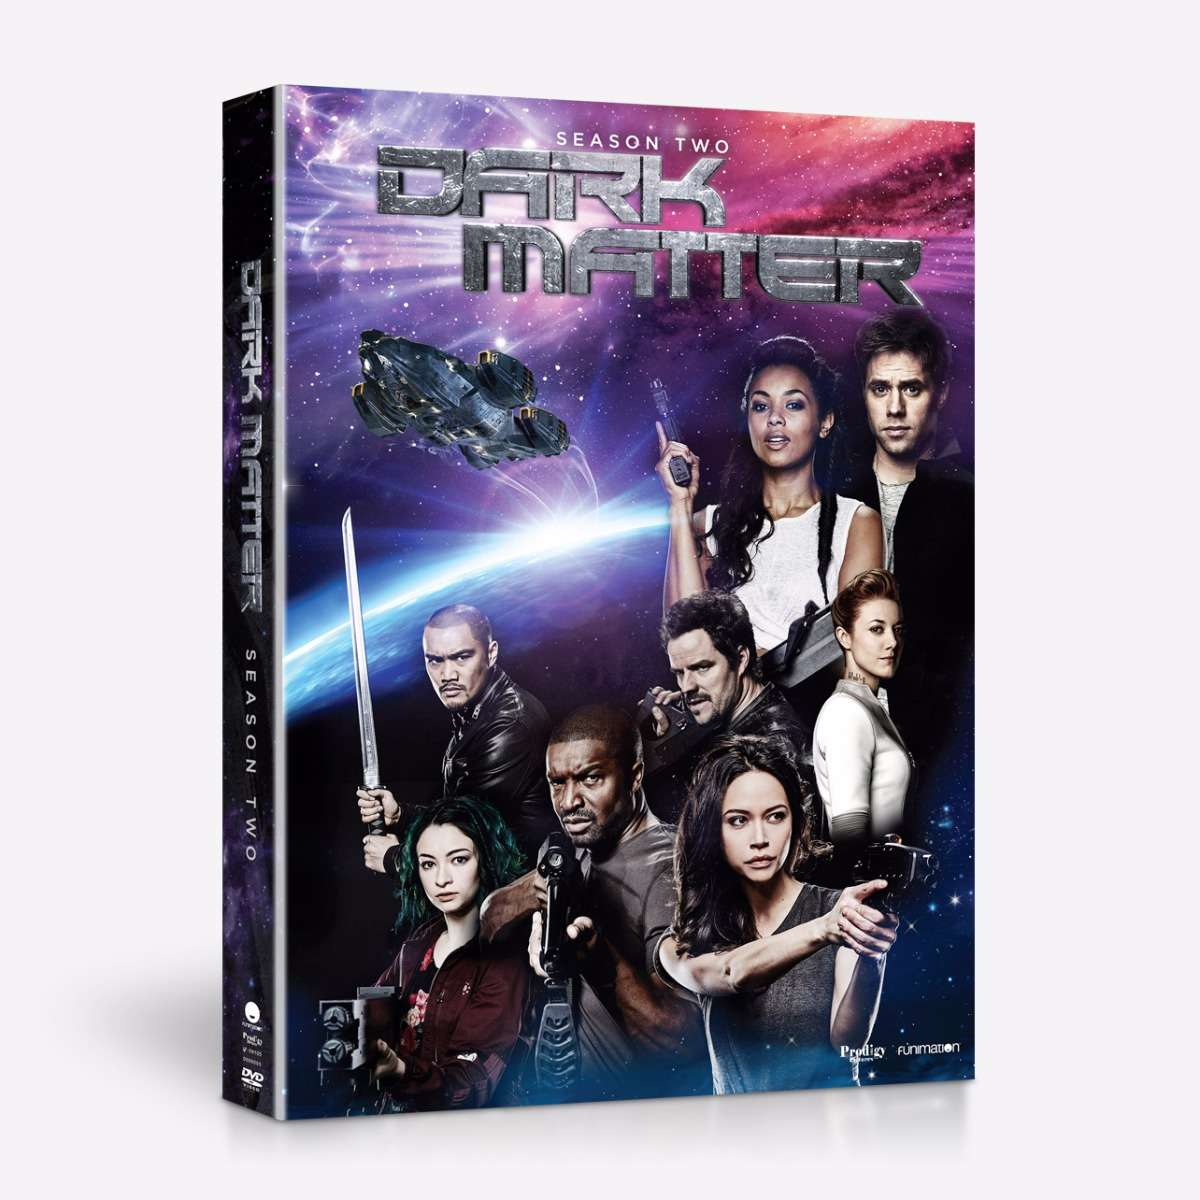 Season Two - DVD home-video